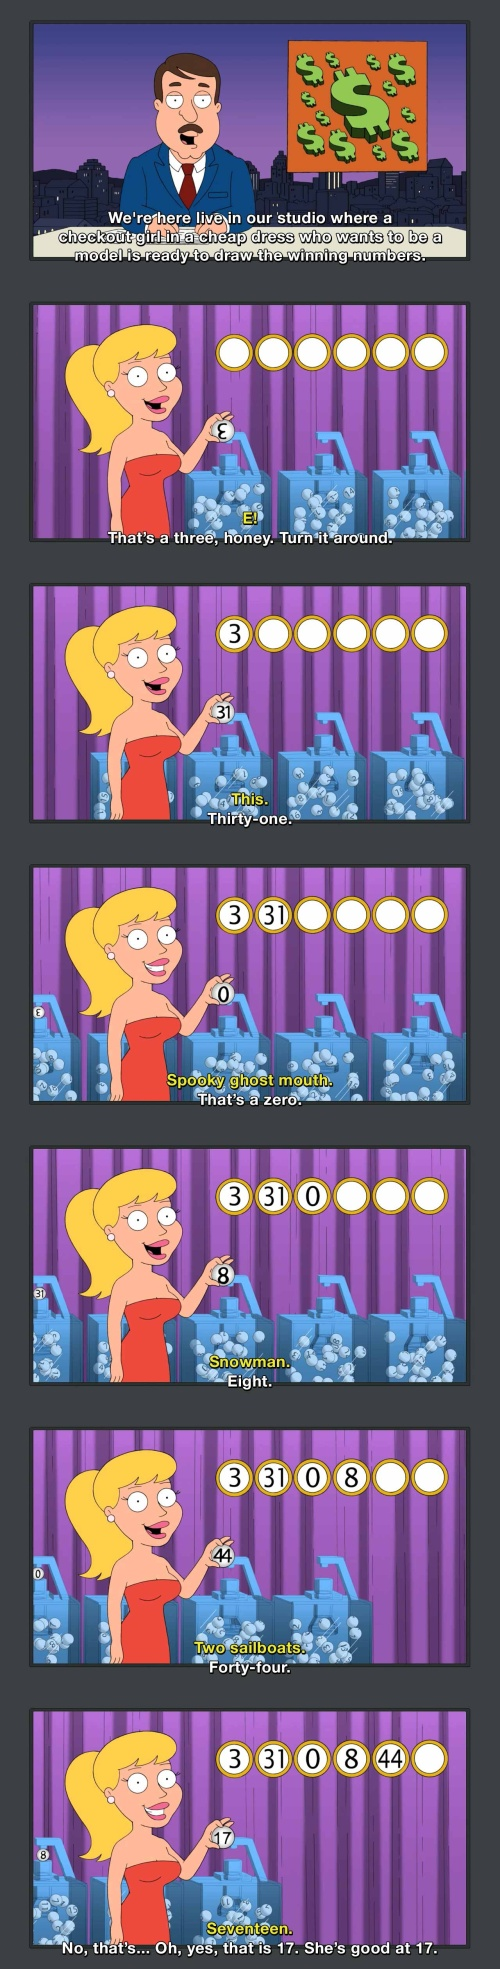 Family Guy - Well, she's pretty